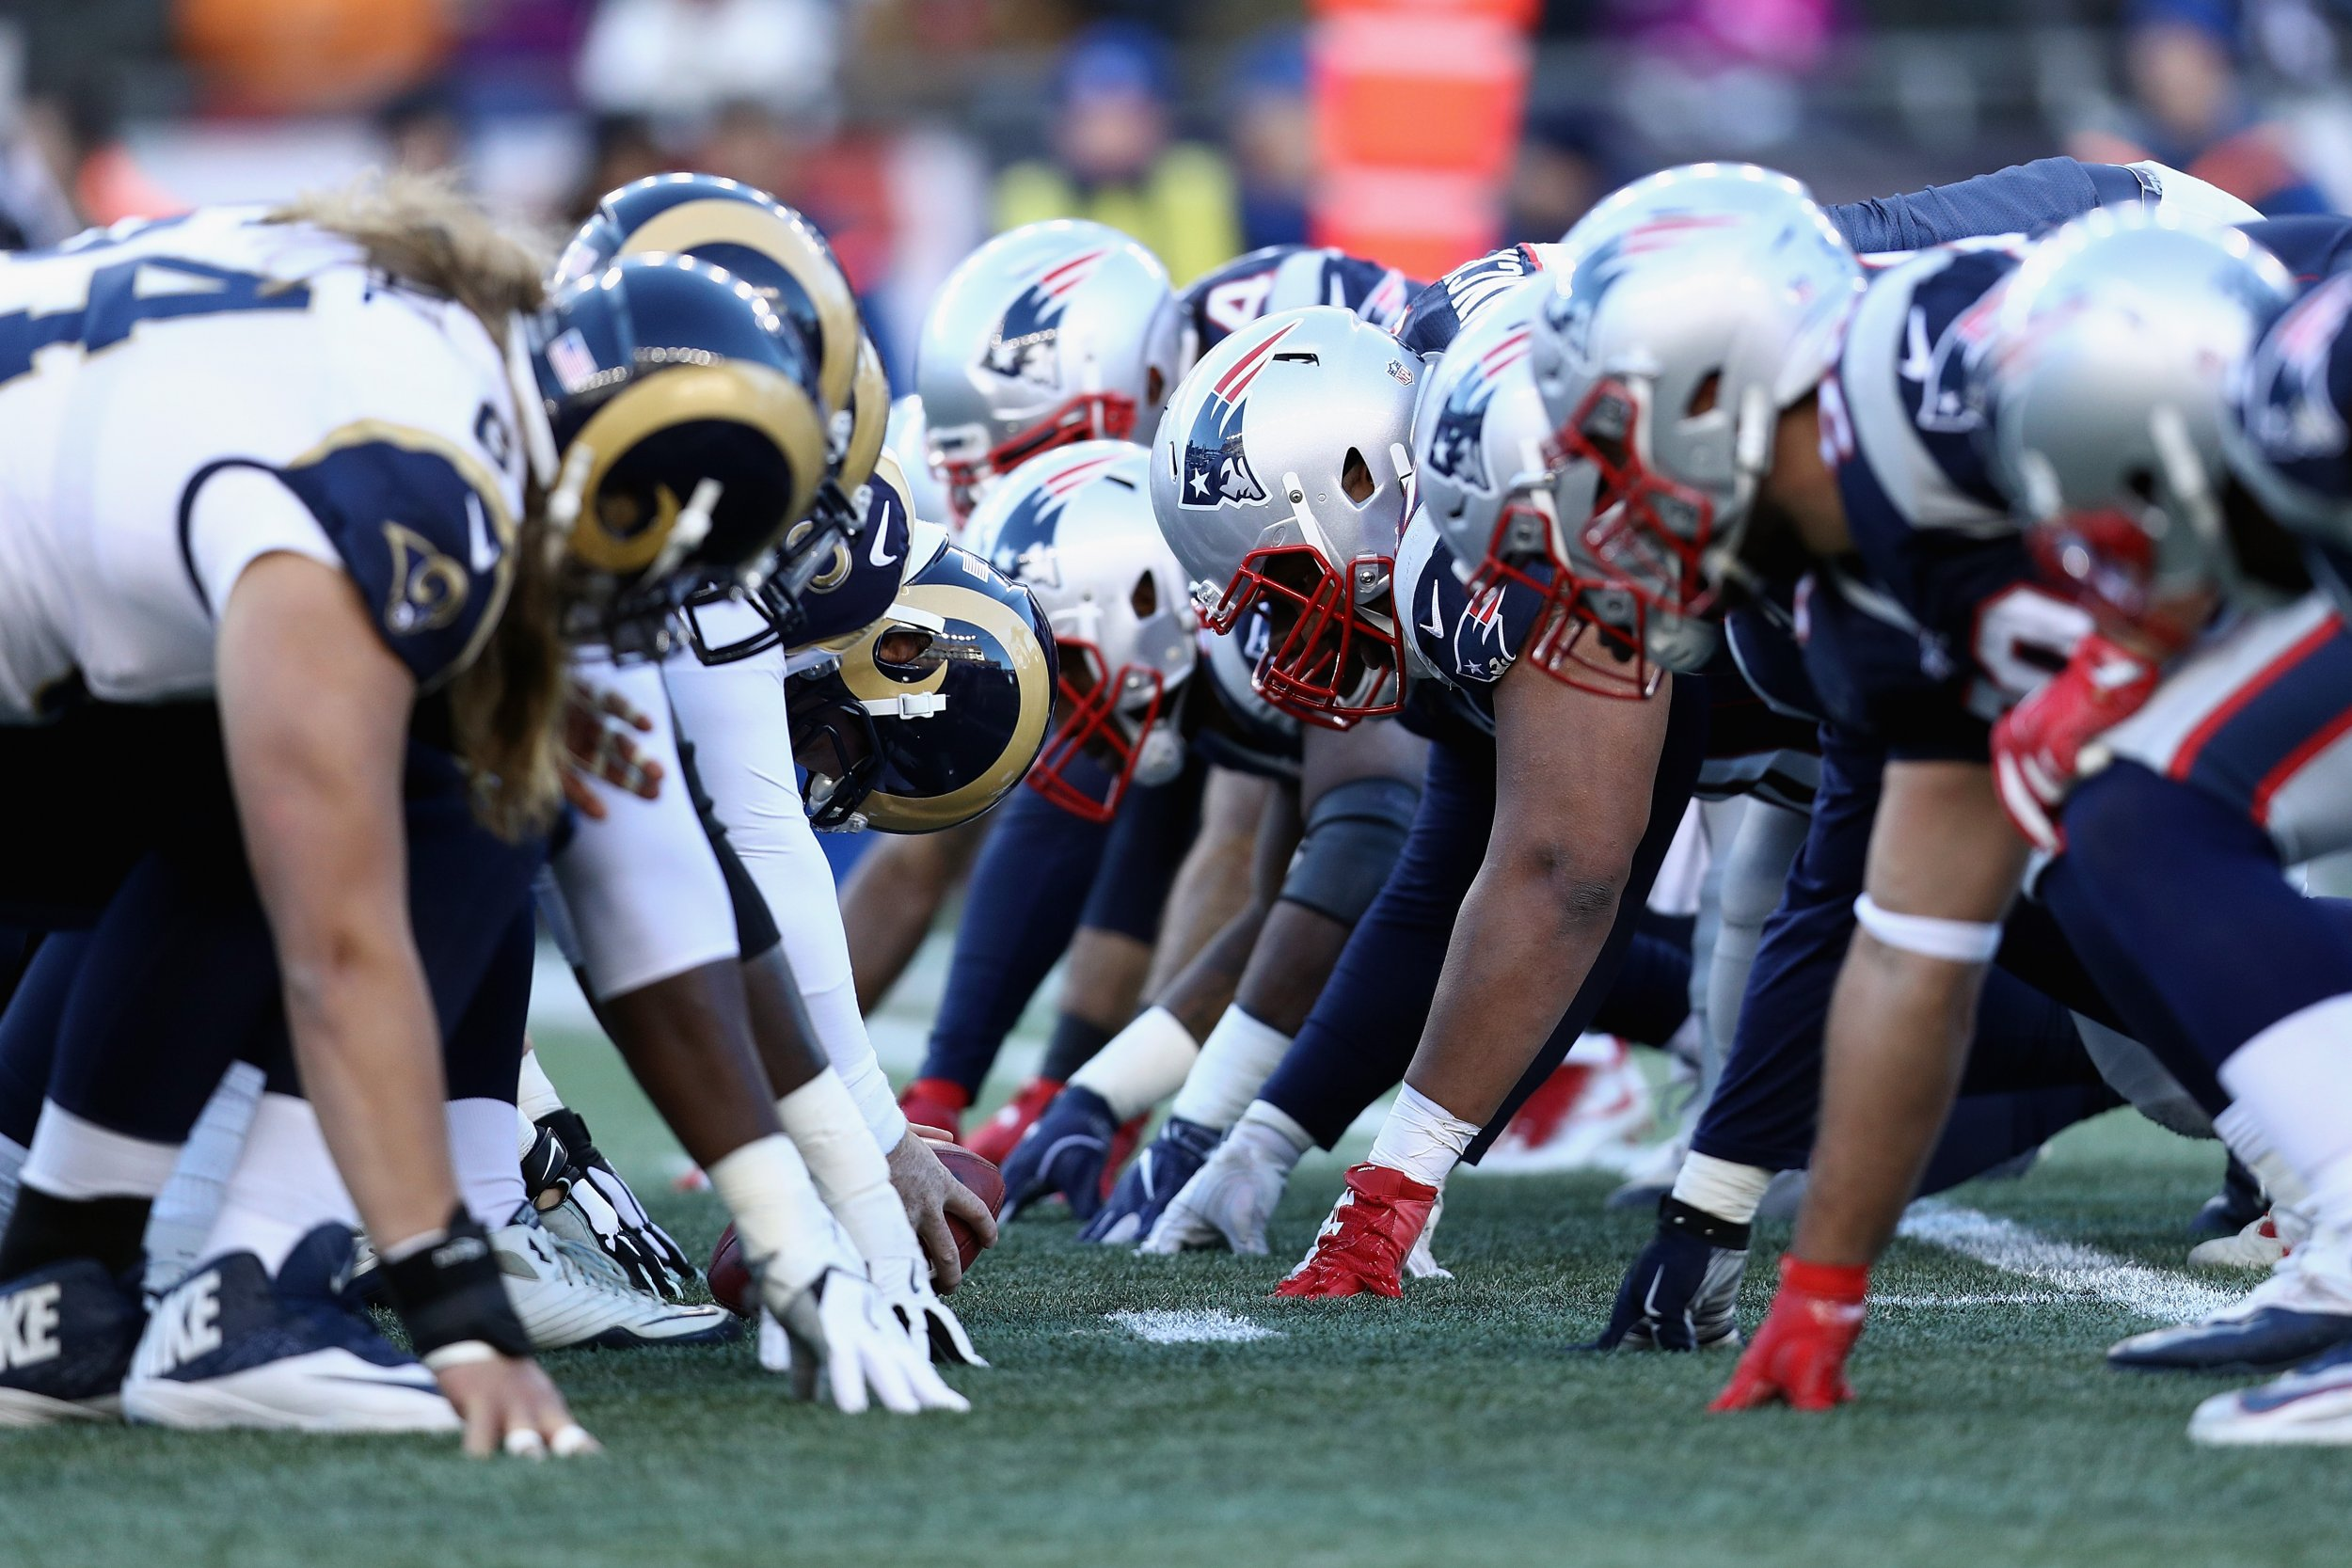 rams vs patriots super bowl who is going to the super bowl?